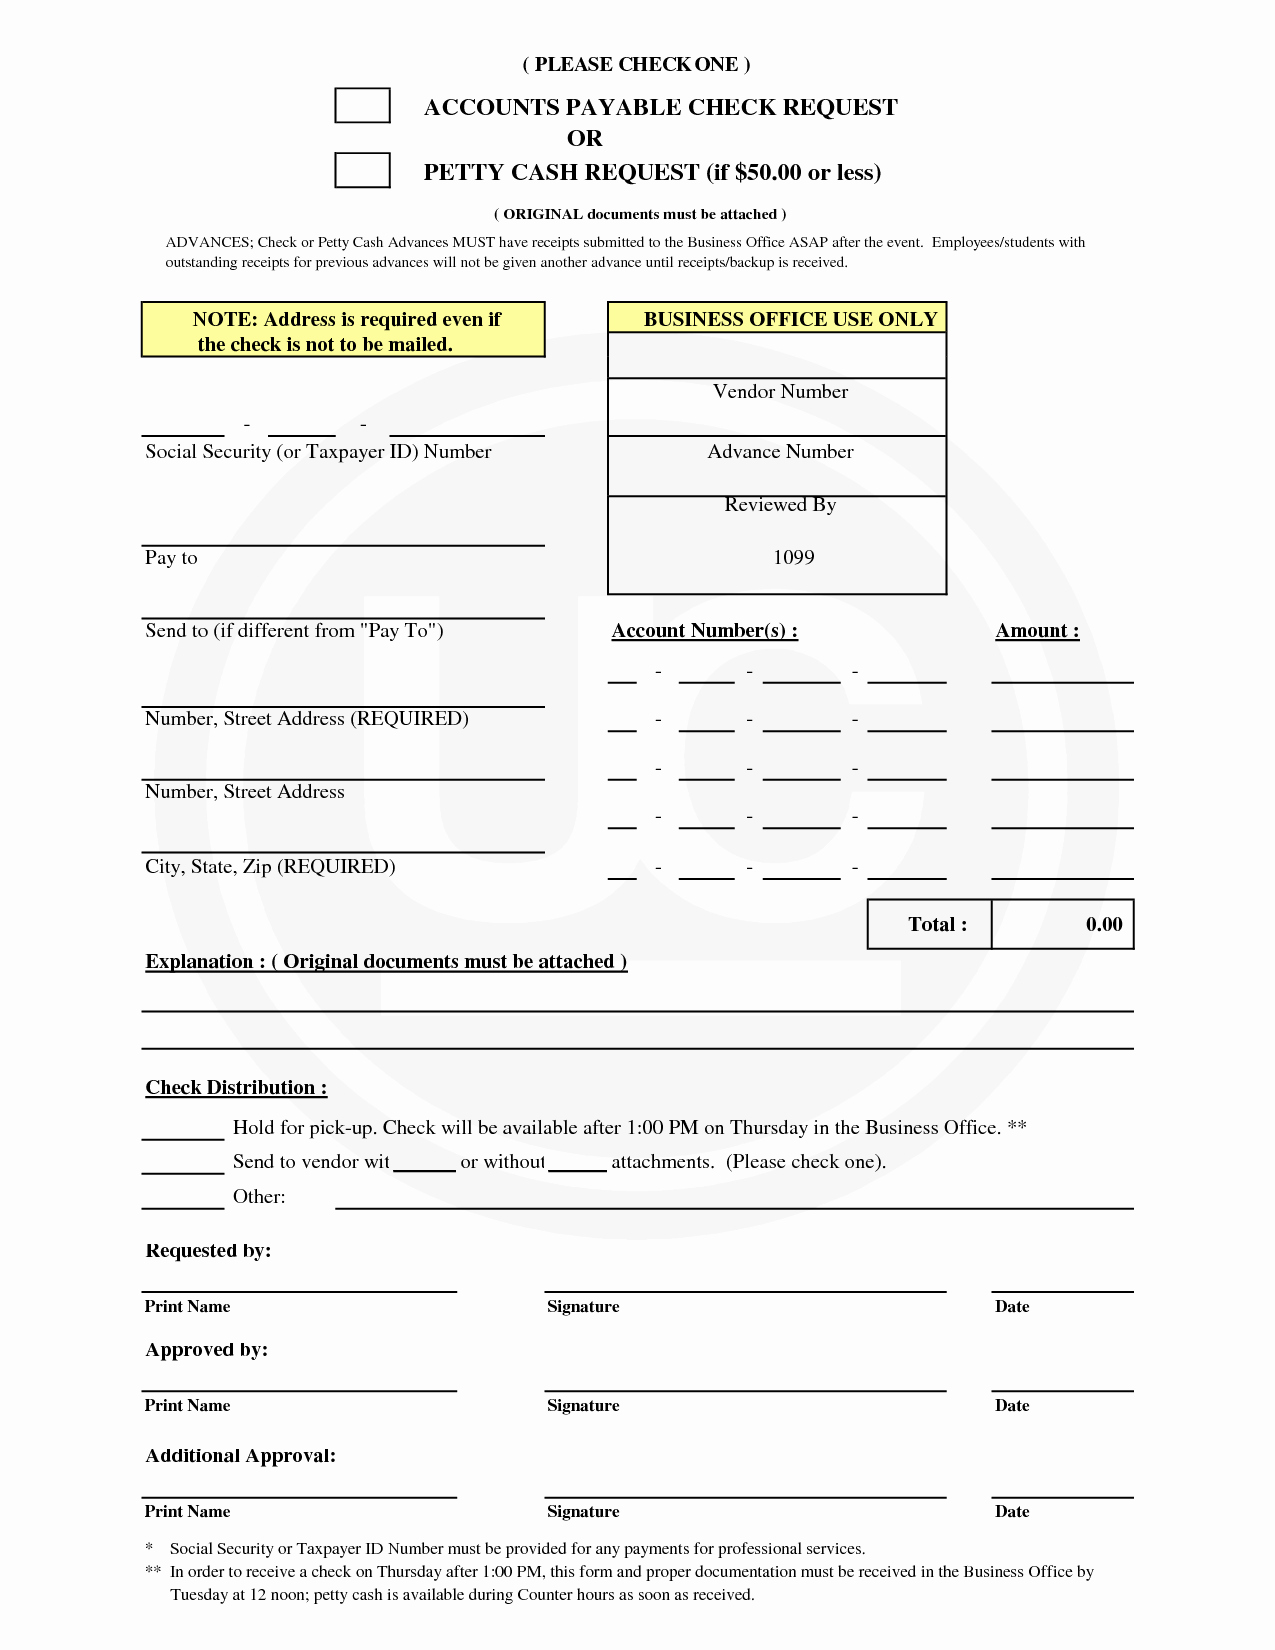 Petty Cash Request form Template Best Of Petty Cash Request form Ideasplataforma